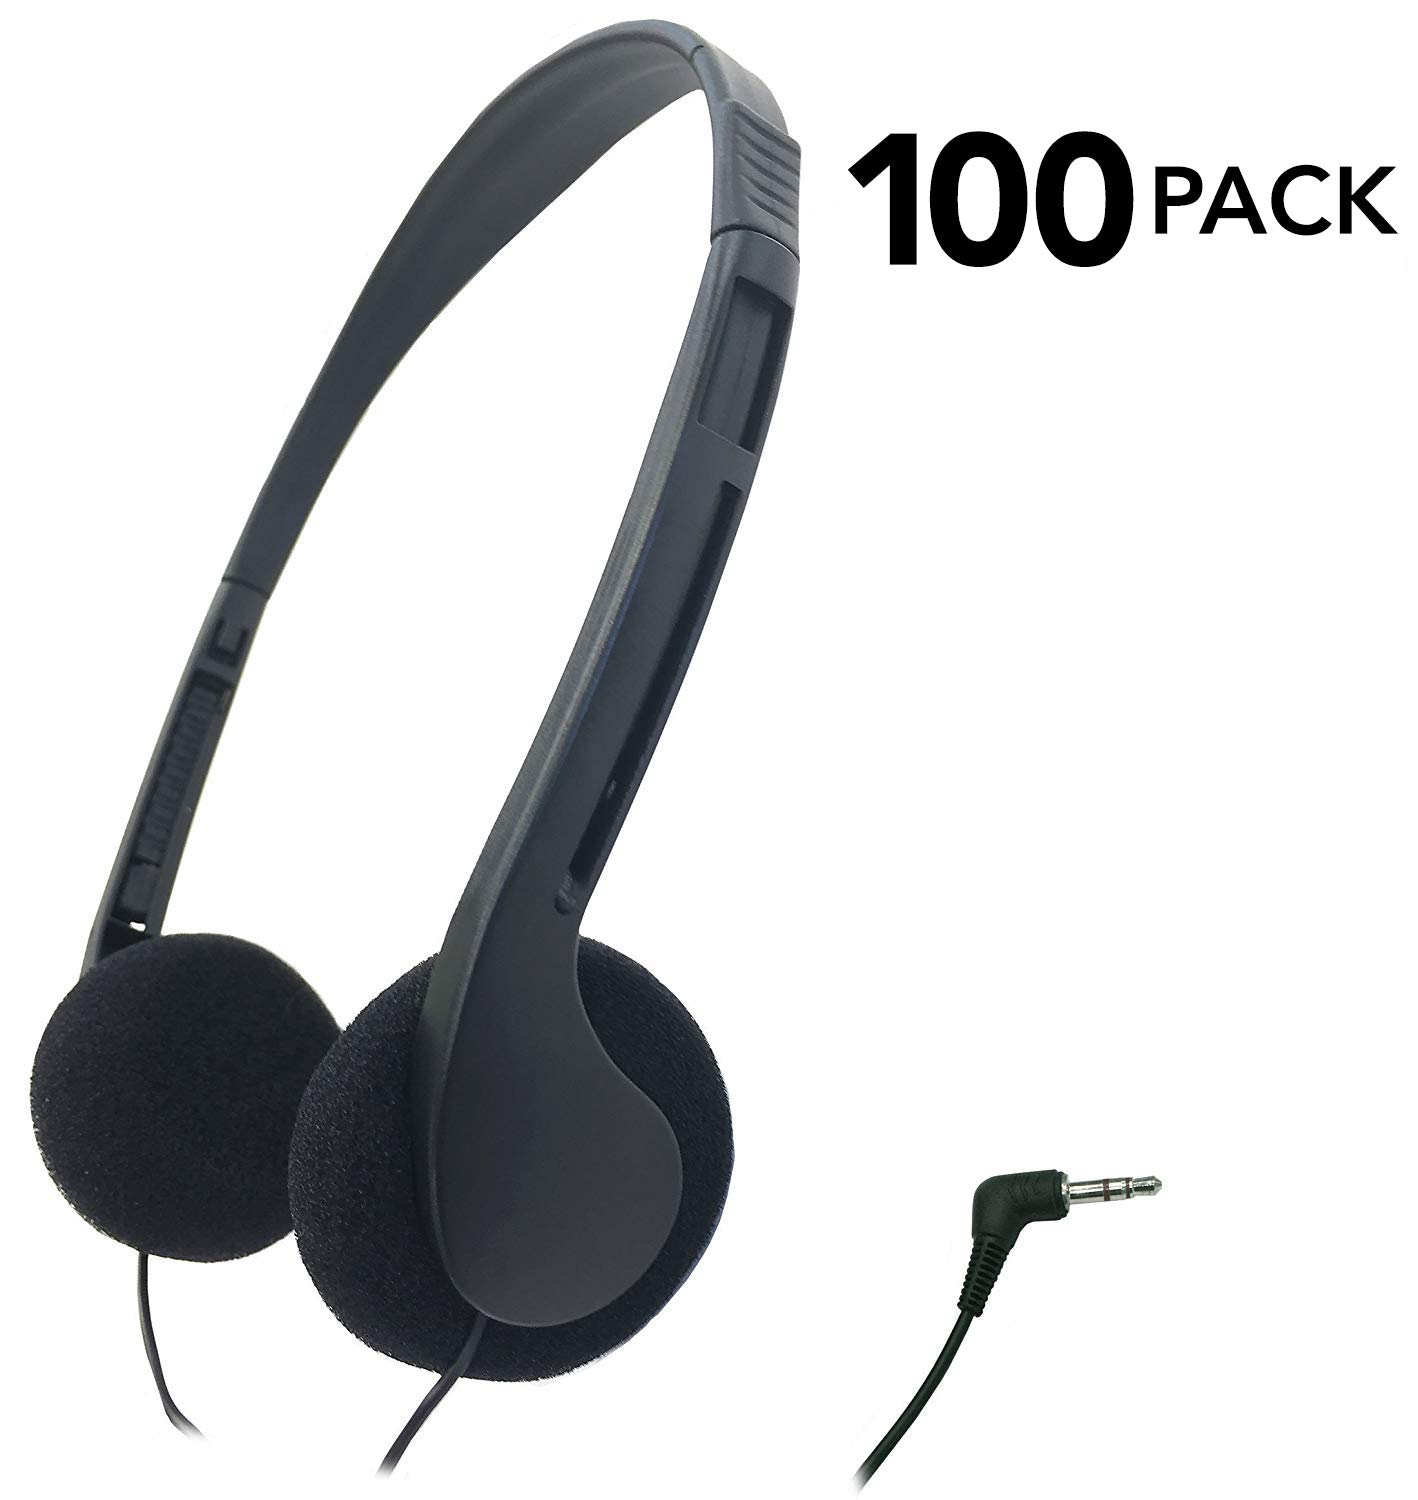 SmithOutlet 100 Pack Low Cost Classroom/Library Headphones by SmithOutlet